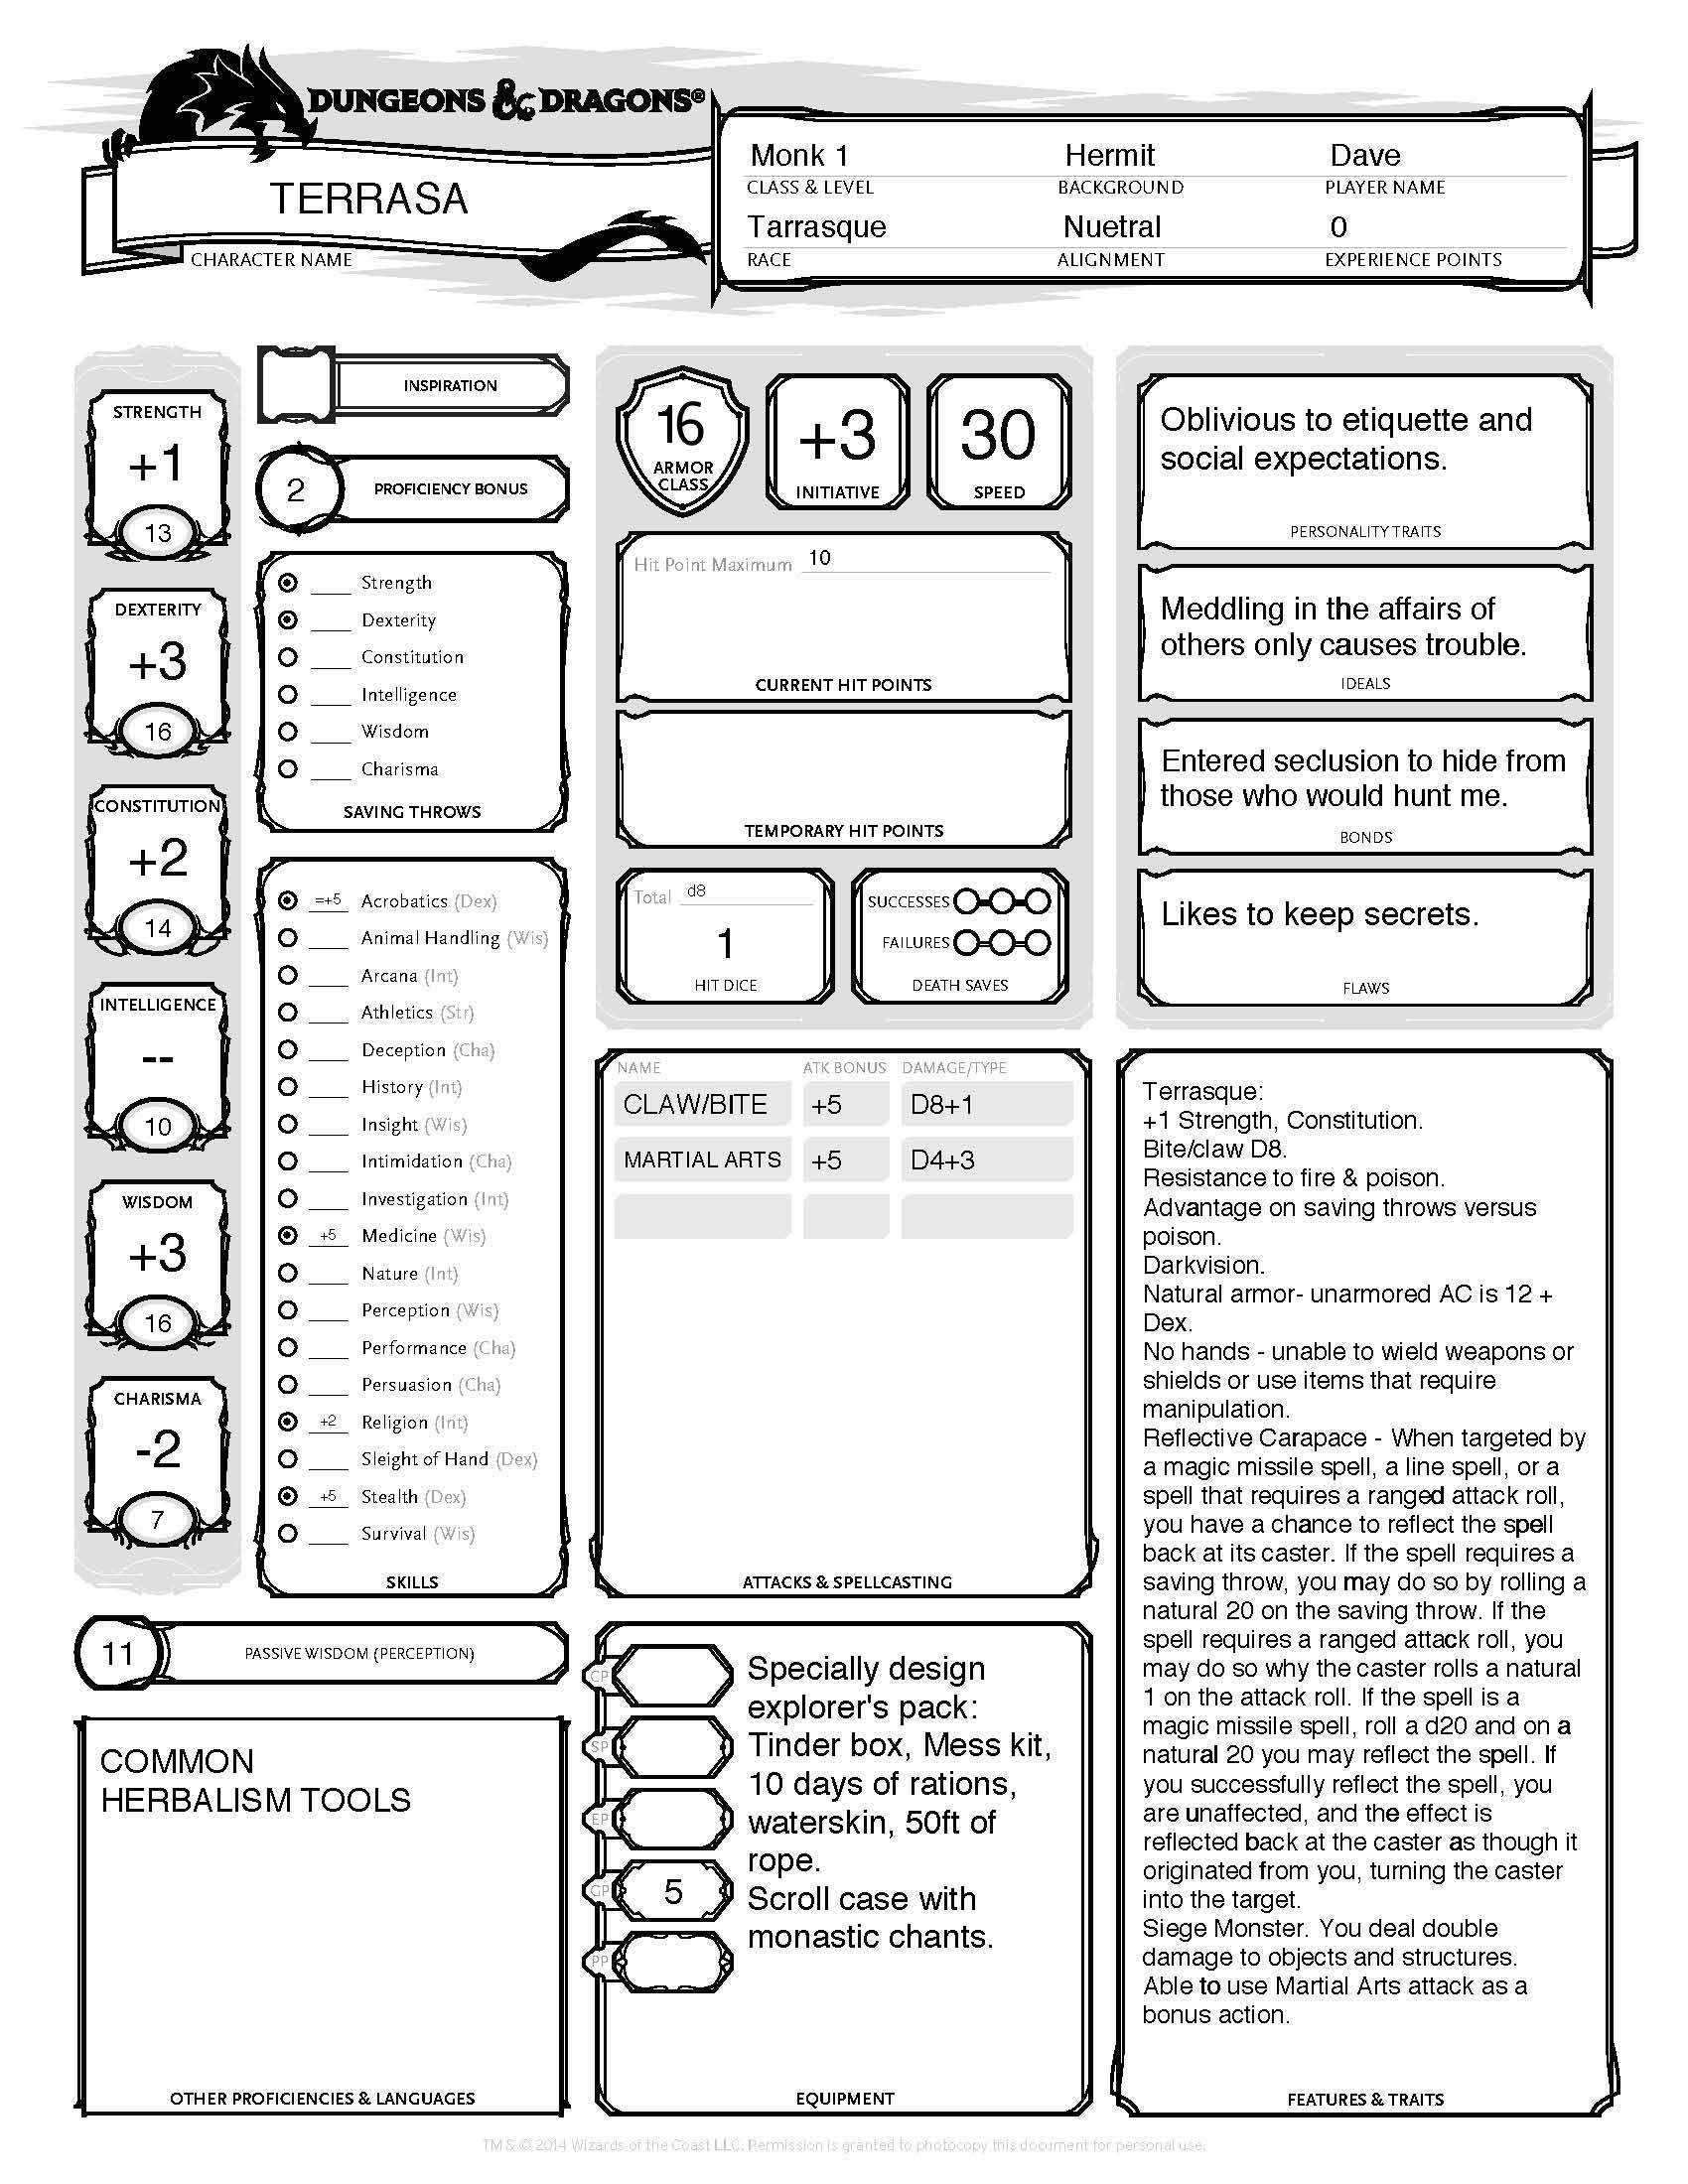 image regarding Initiative Tracker 5e Printable referred to as Monster Sheets 5e